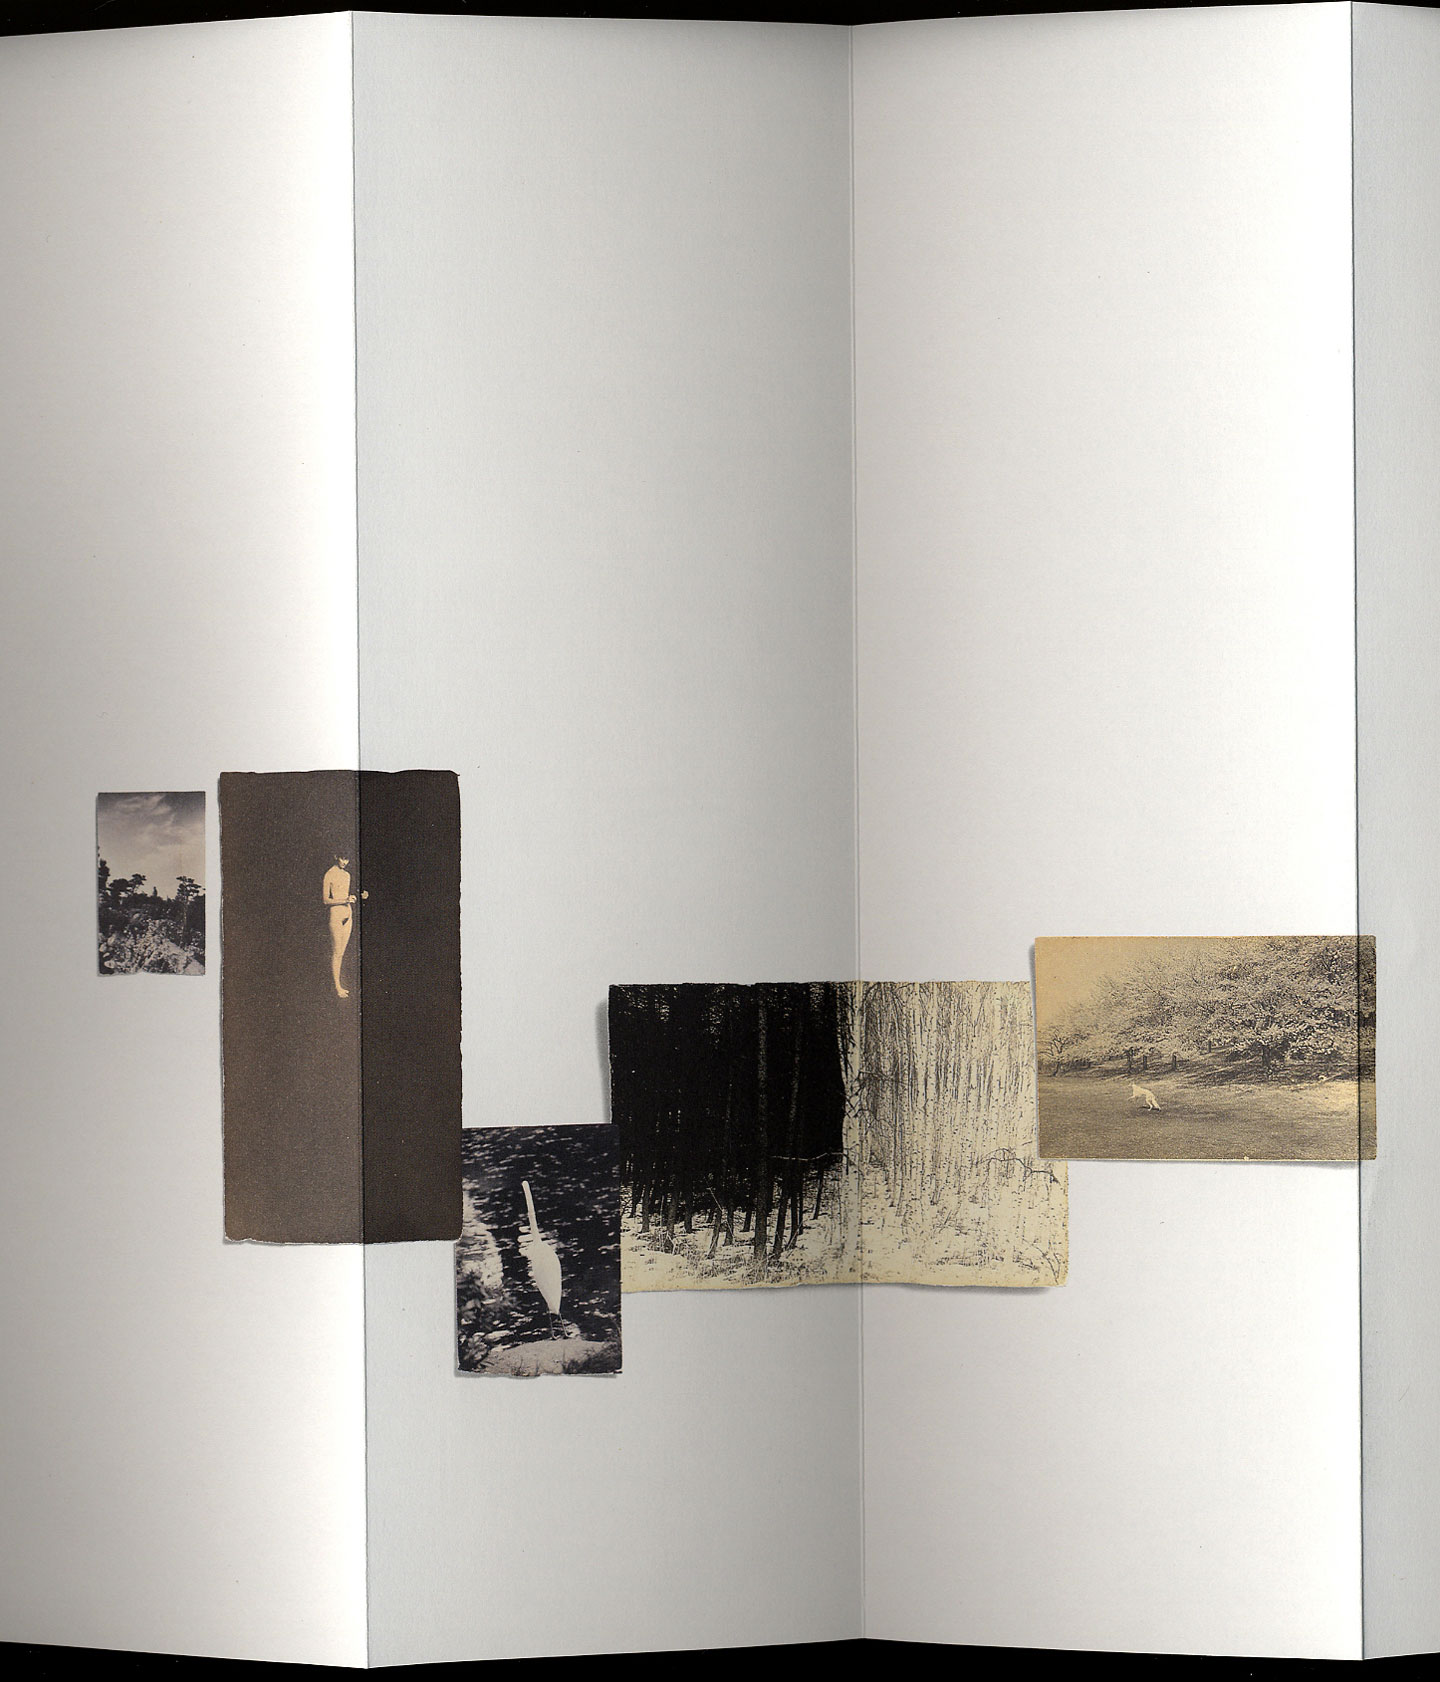 Masao Yamamoto: Ômizuao (Pillow Book), Special Limited Edition (with Print)